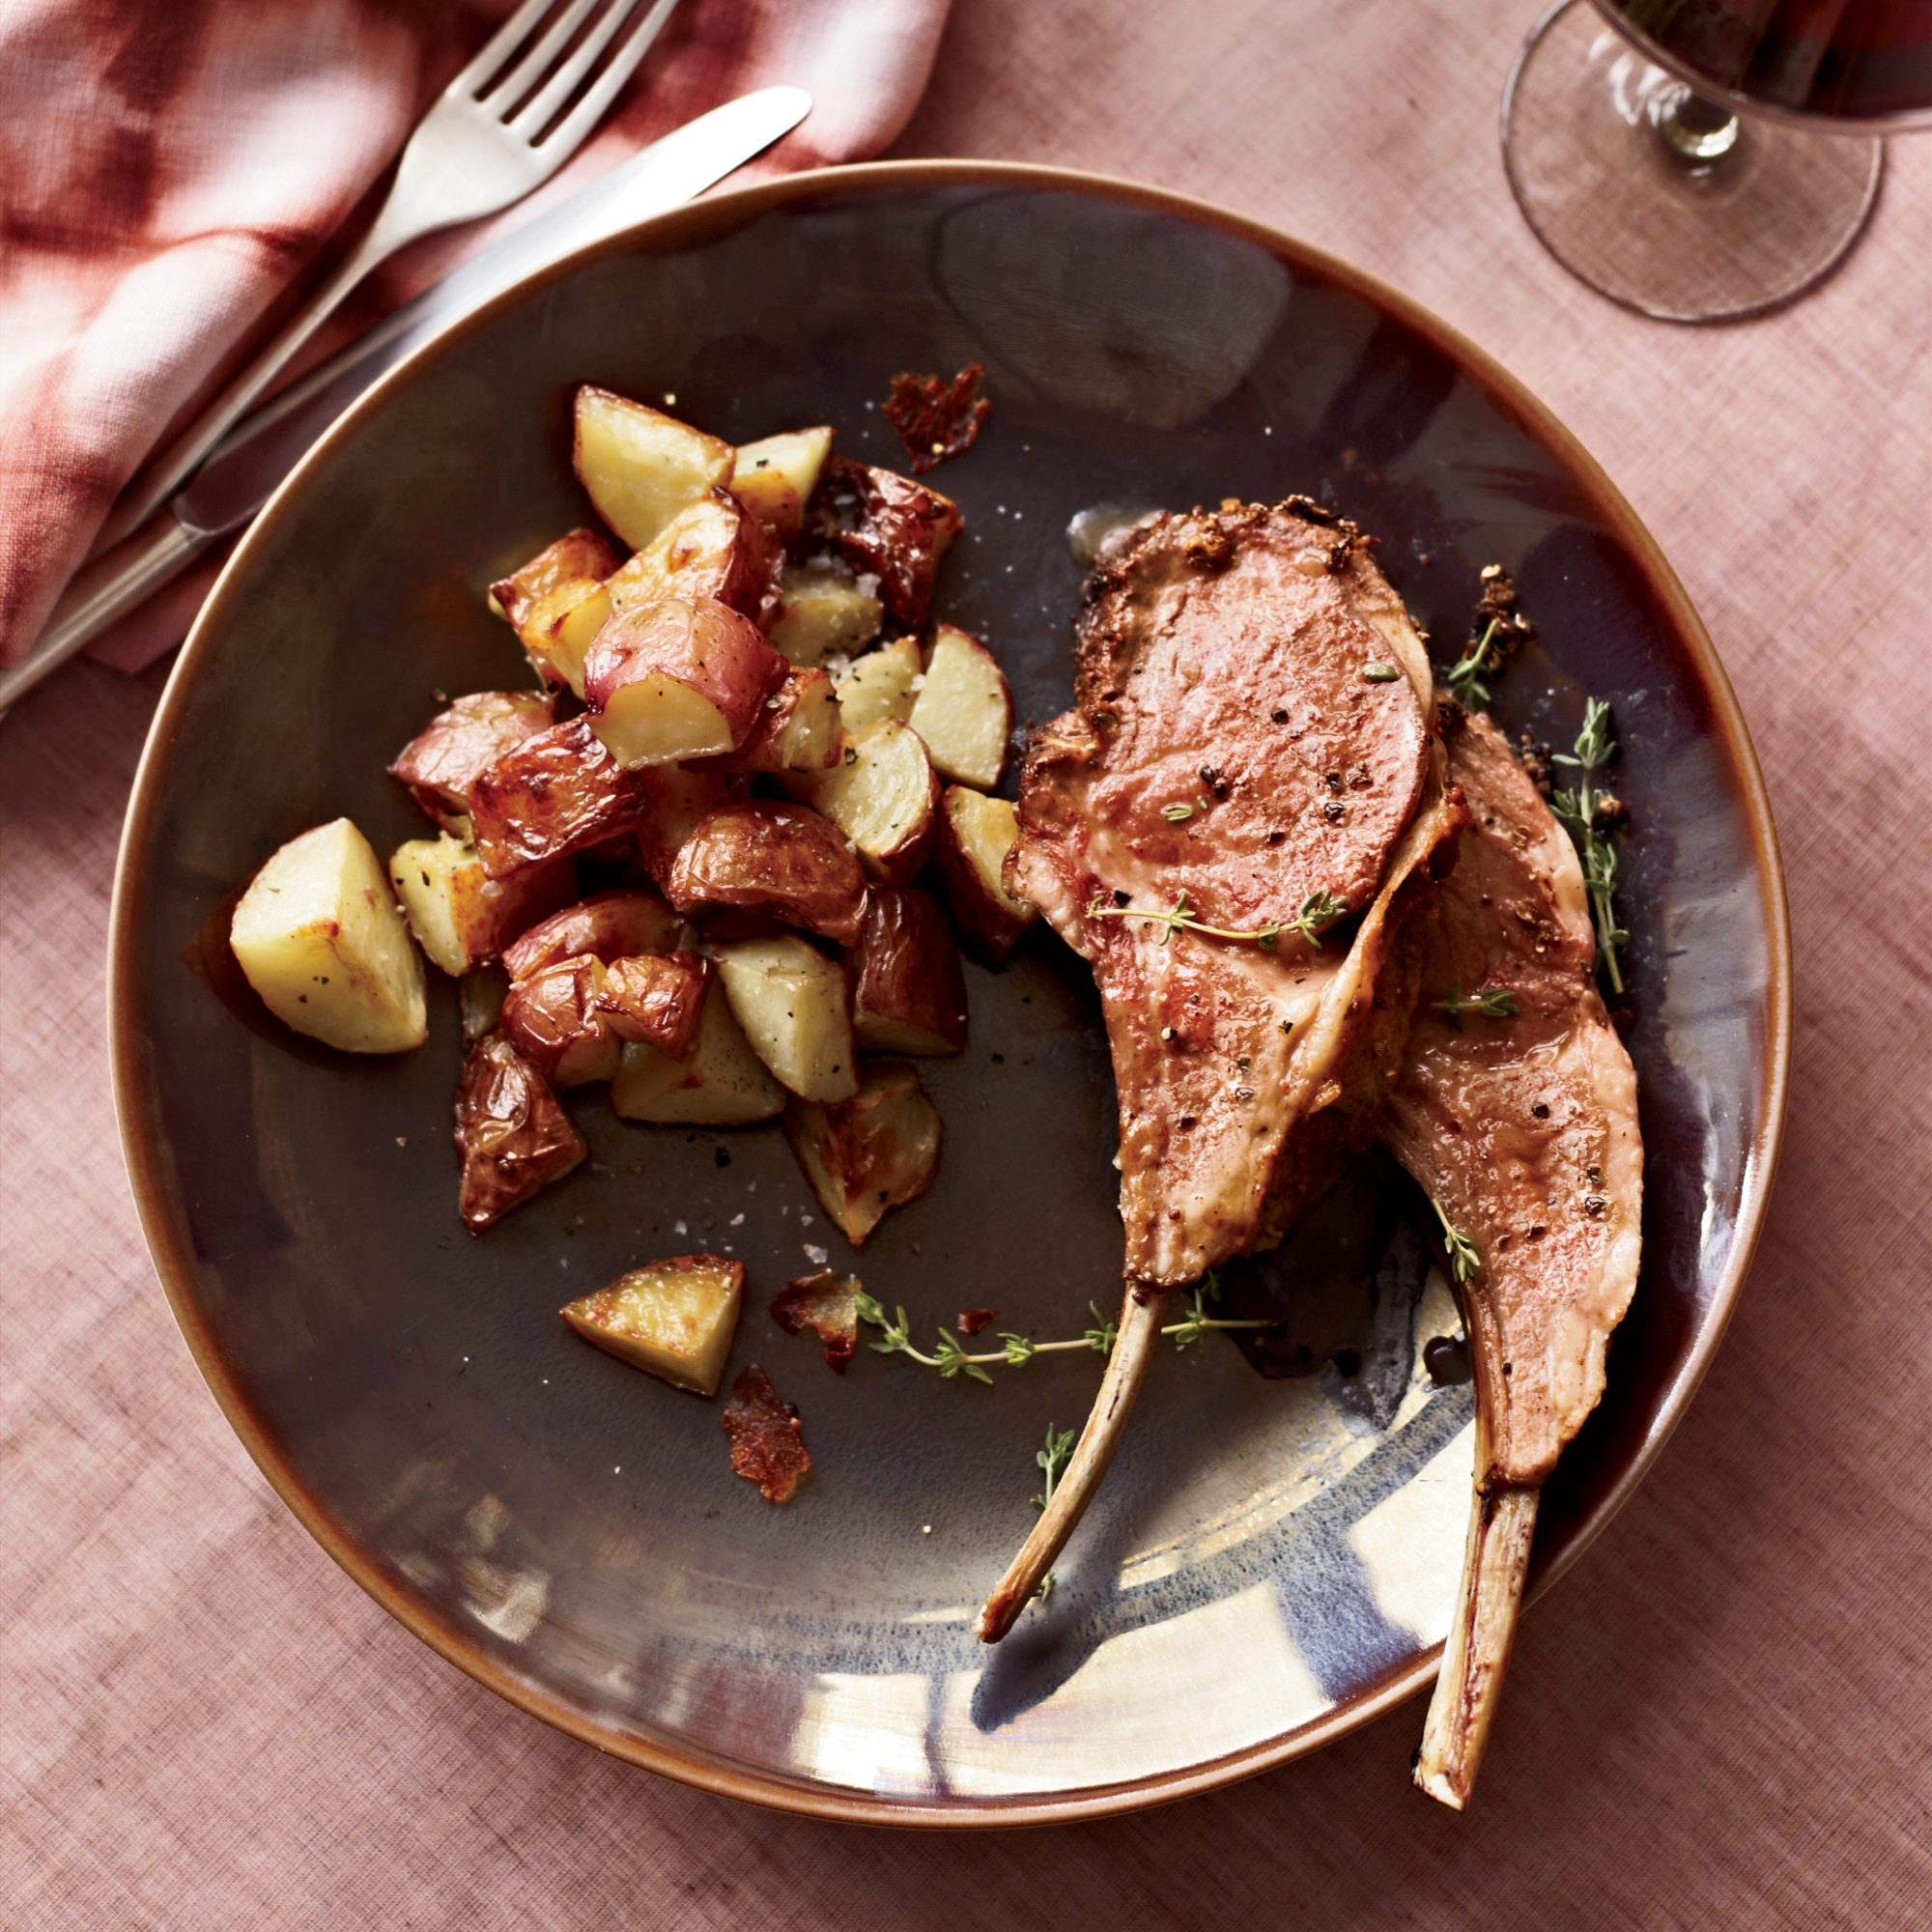 Coriander-Crusted Rack of Lamb with Shallot Jus